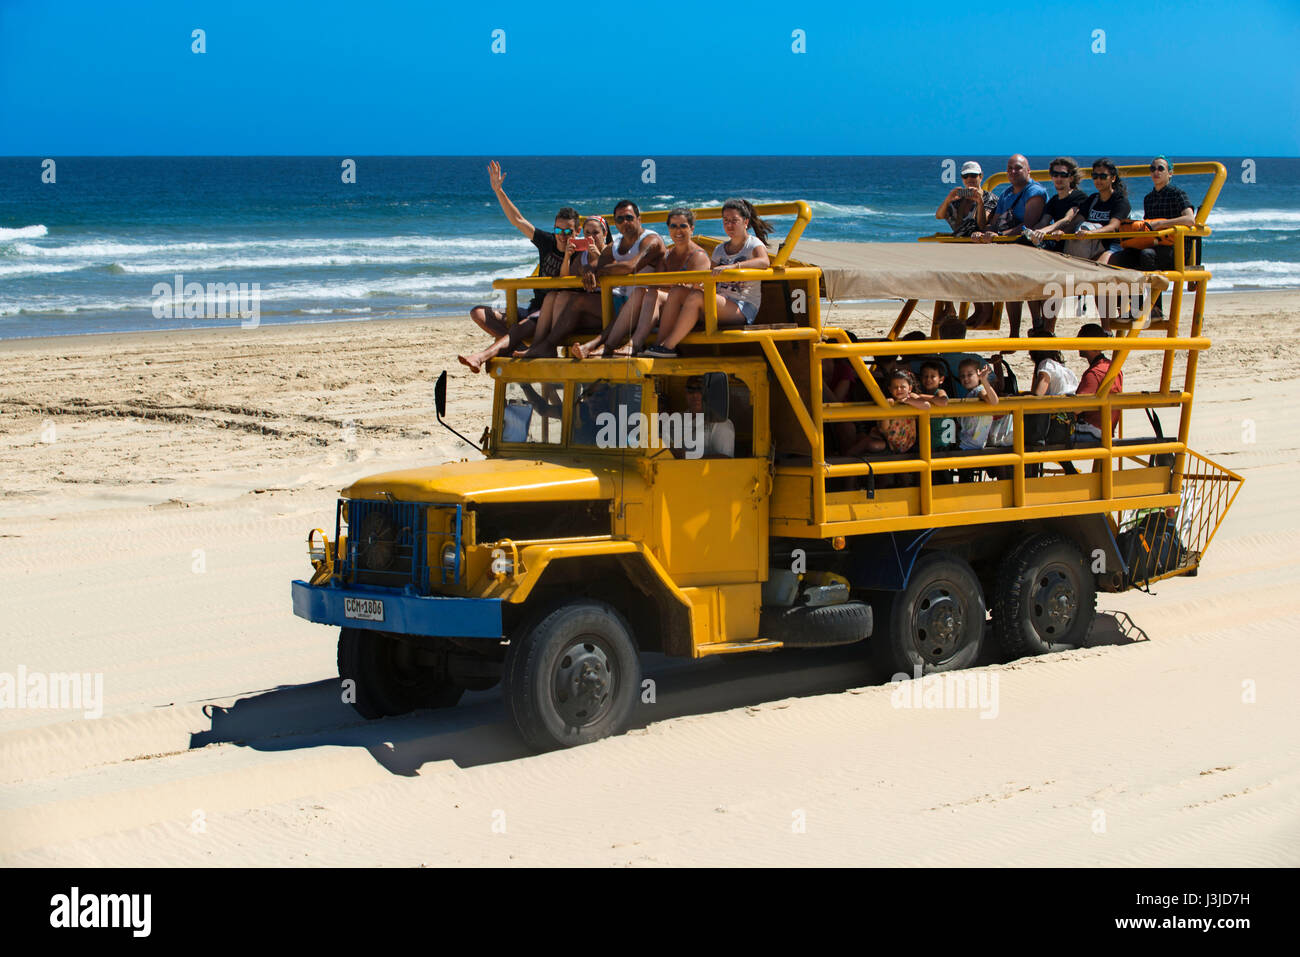 Special trucks are used to get to the hamlet, Cabo Polonio, Rocha Department, Uruguay. - Stock Image